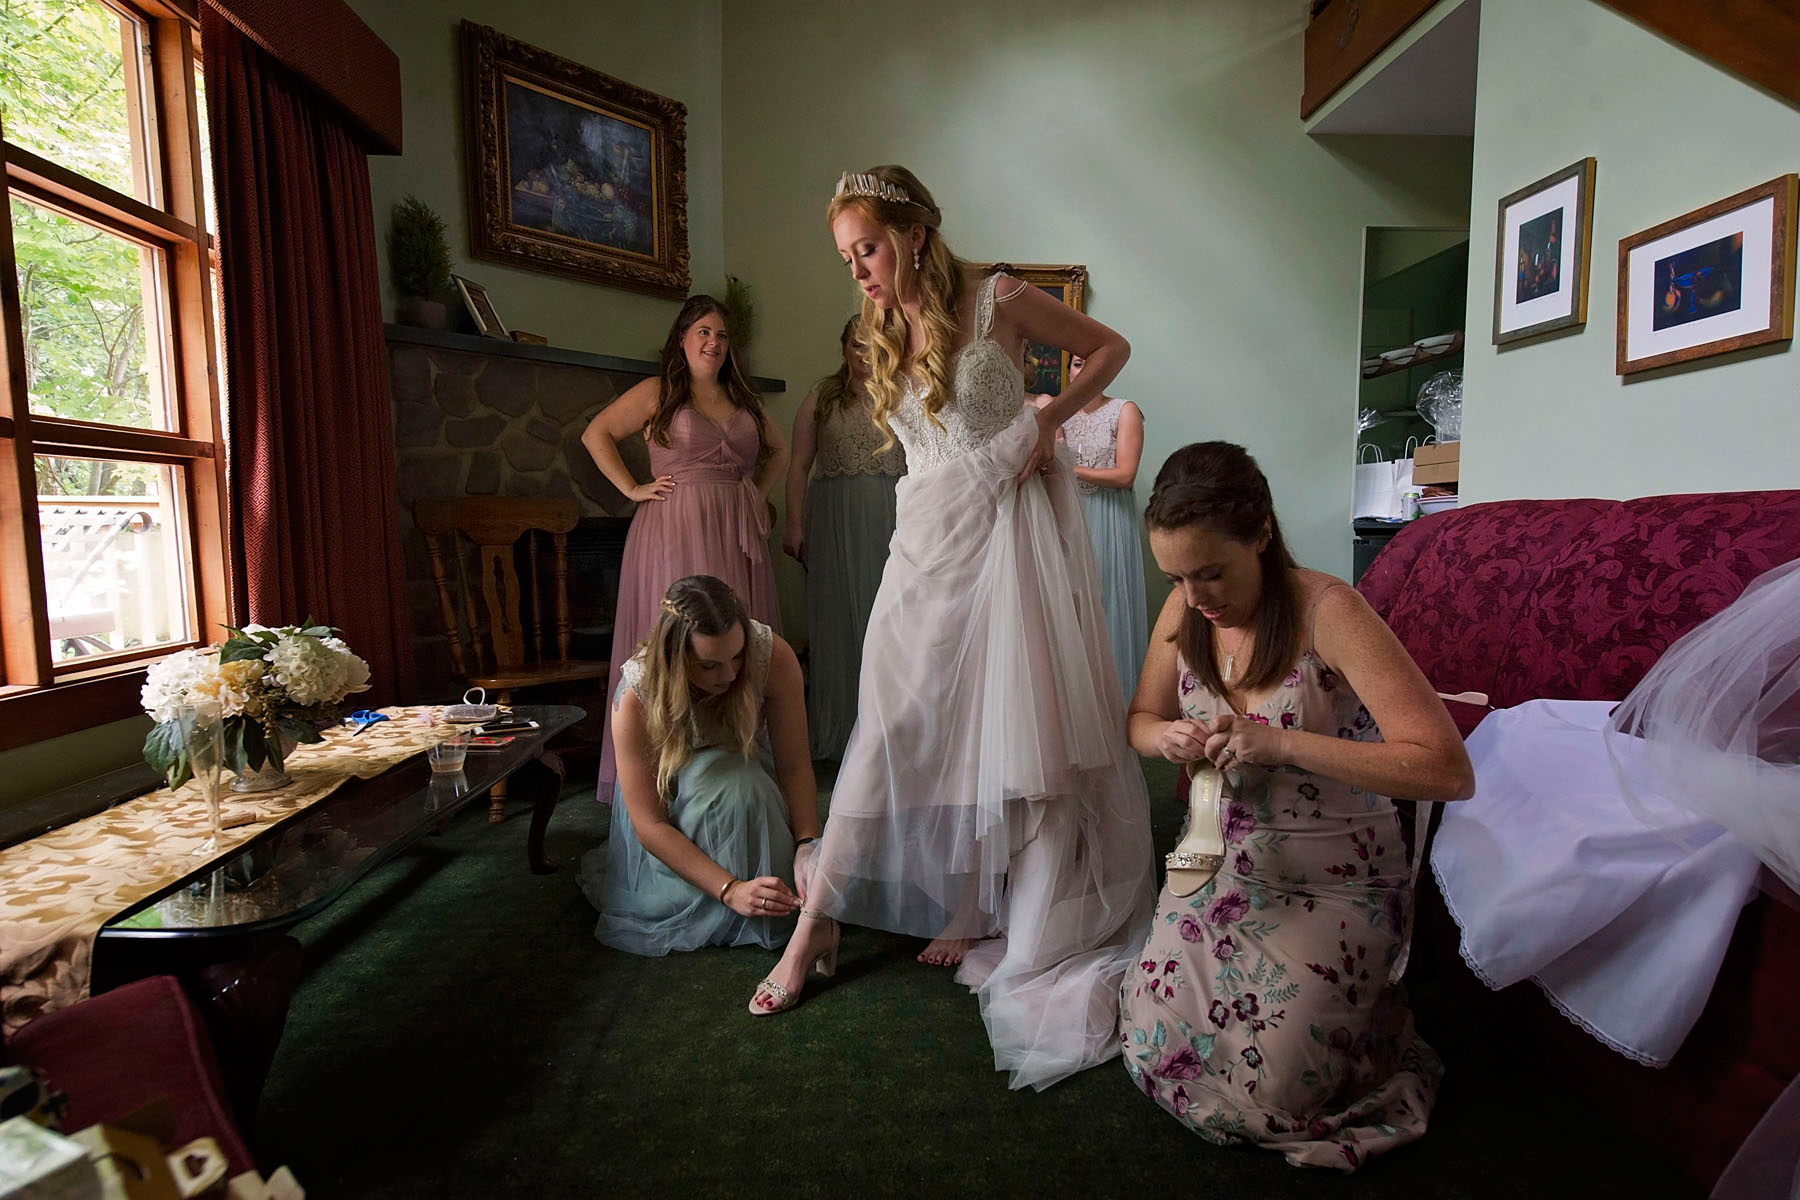 Bucks_County_wedding_photographer_Stroudsmoor_country_inn_wedding_Philadelphia_wedding_photographer_04_fairy_inspired_bride_getting_dressed_stepping_in_shoes.JPG